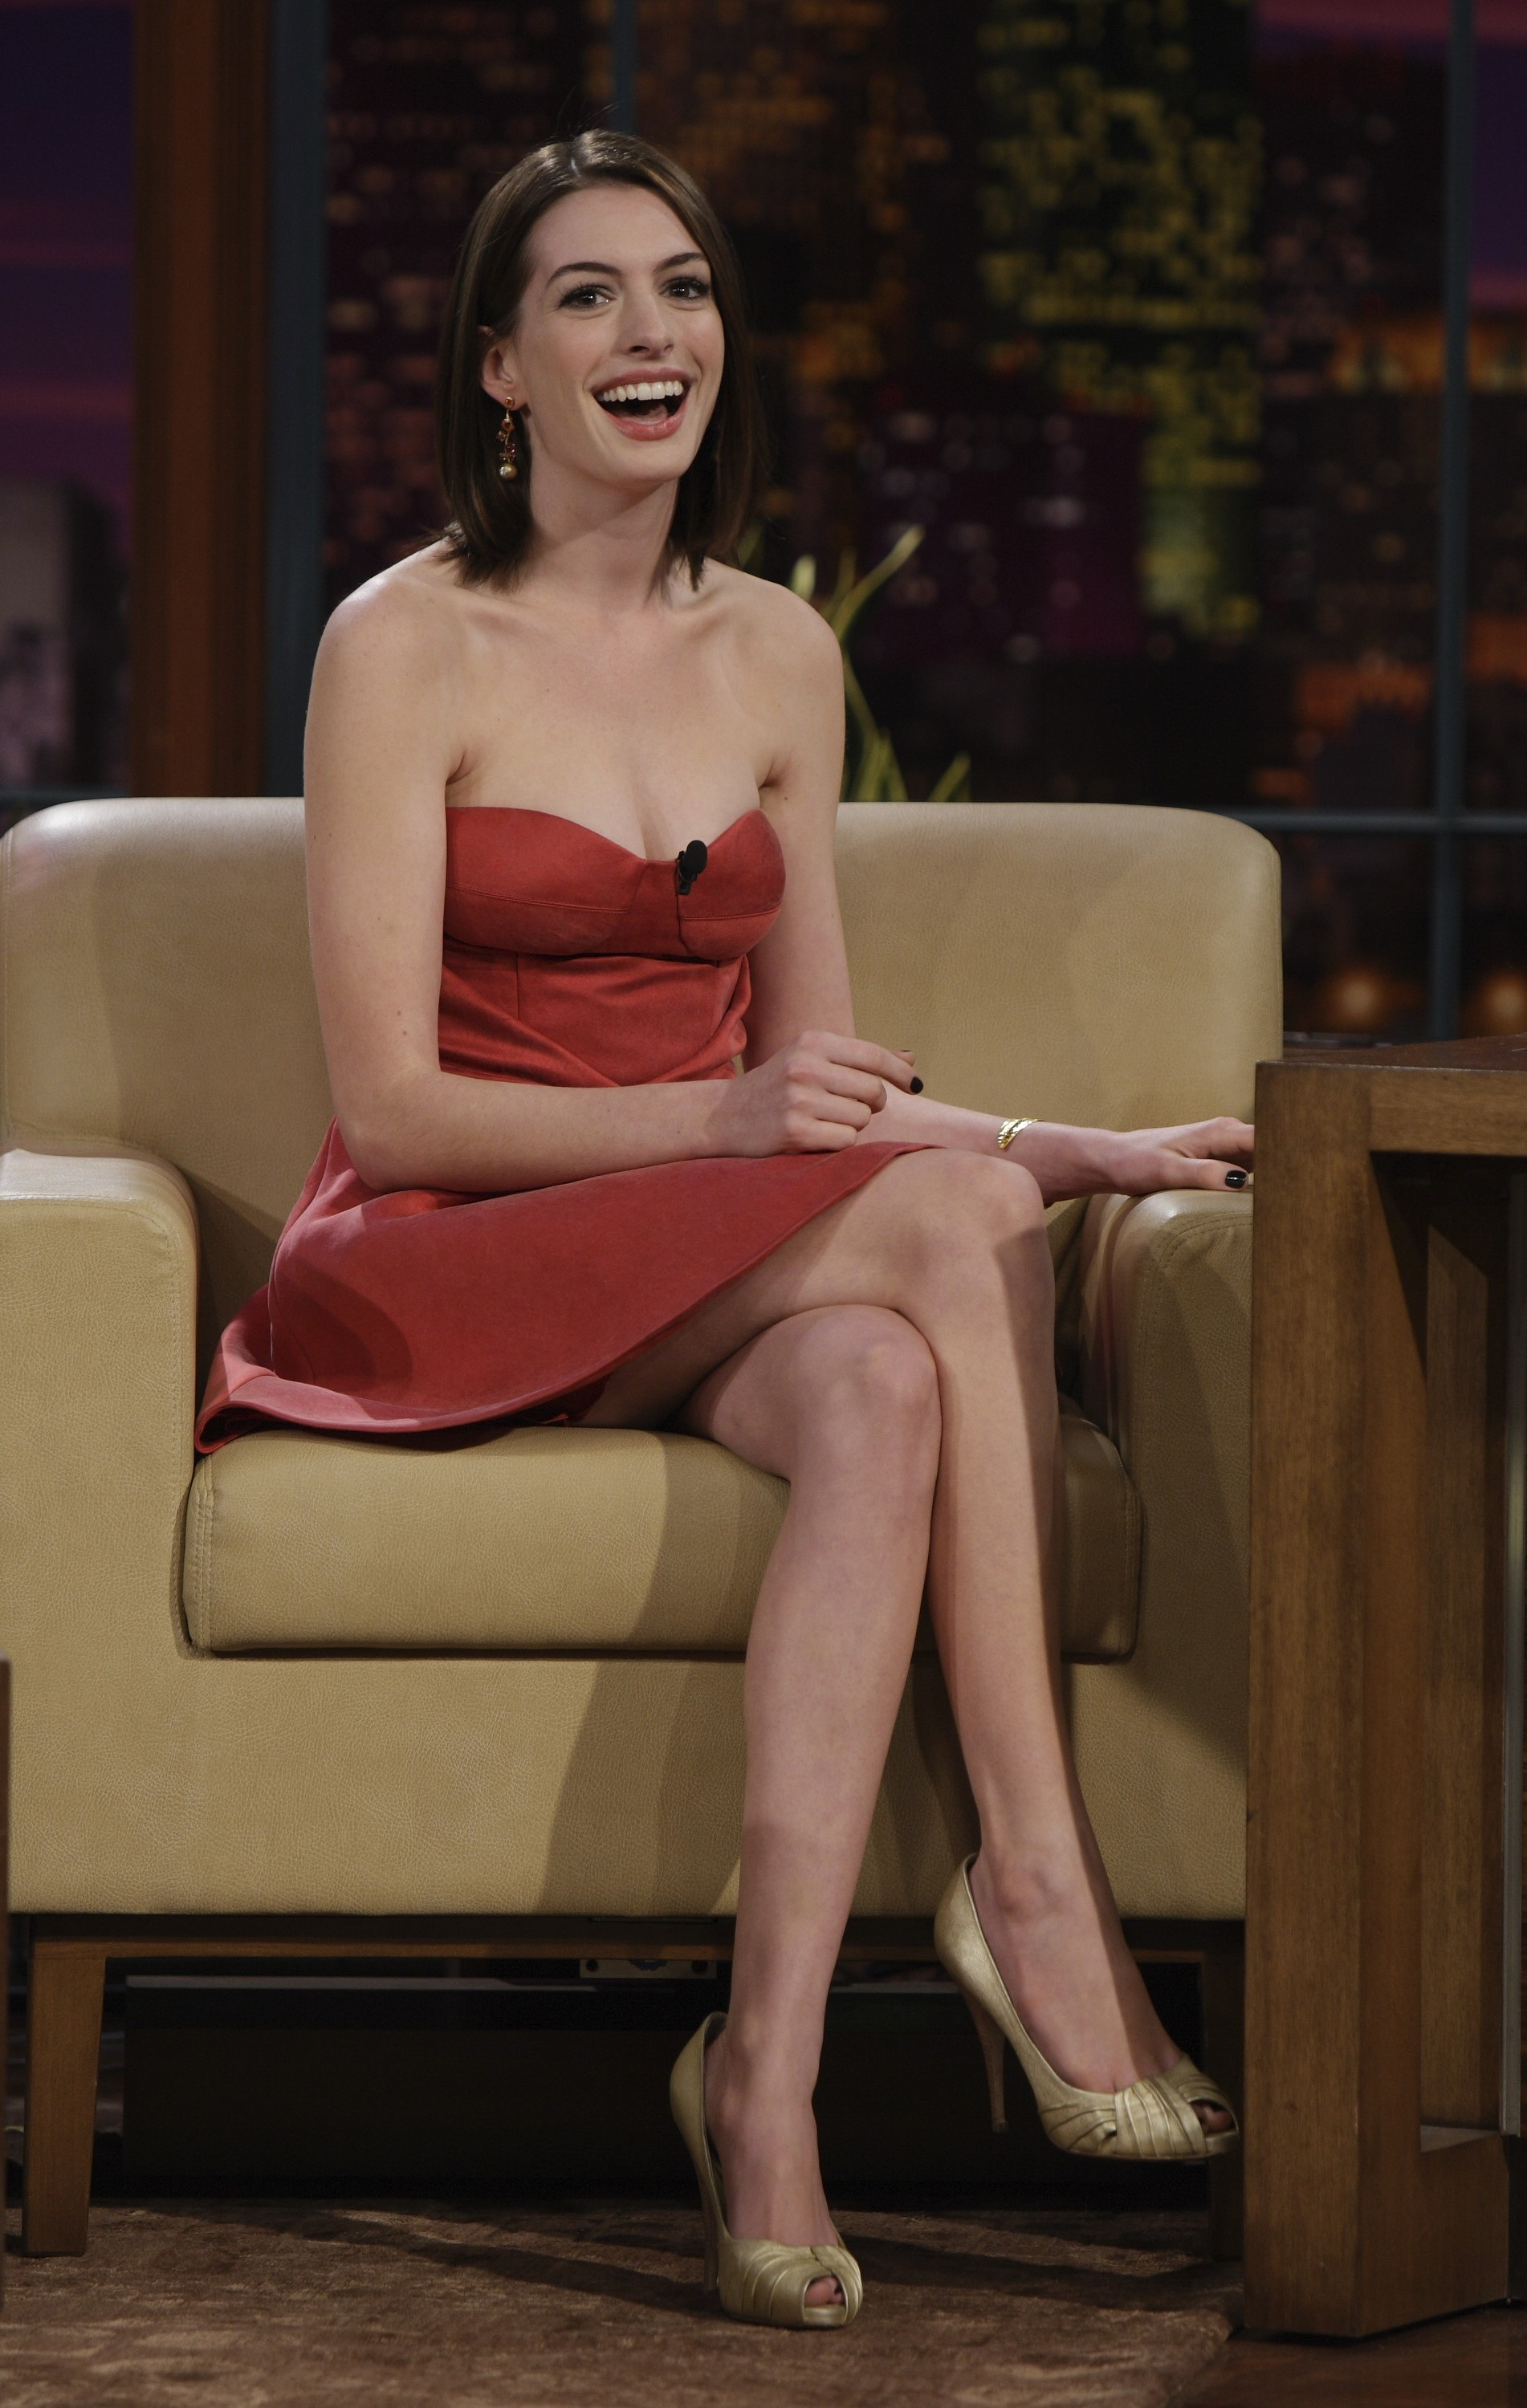 21469_celeb-city.org_Anne_Hathaway_The_Tonight_Show_06-16-2008_10_123_905lo.jpg